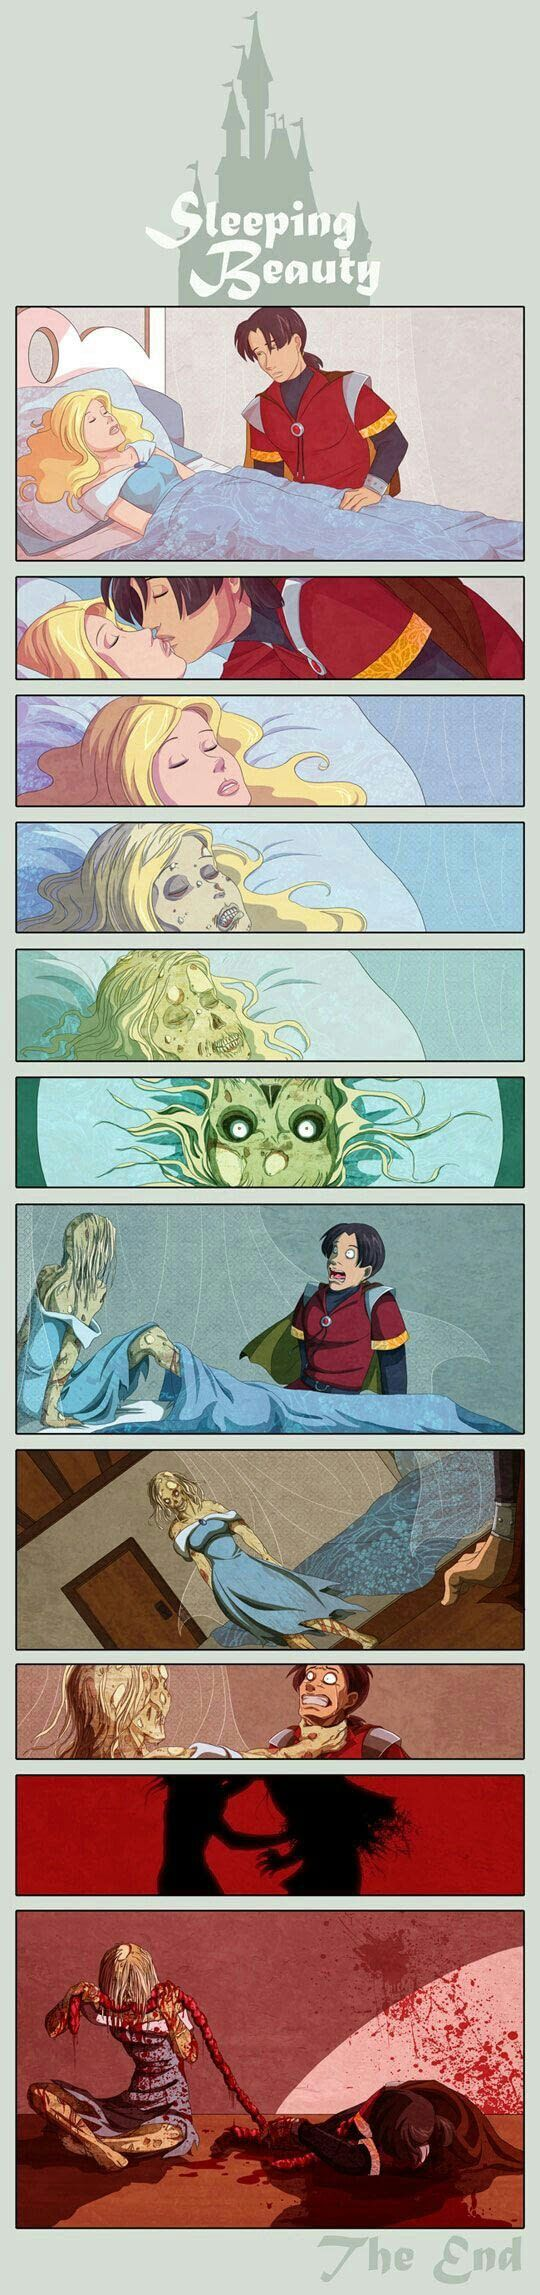 Sleeping beauty - 213 points • 16 comments – Sleeping beauty – 9GAG has the best funny pics, gifs, videos, gaming, anime, manga, movie, tv, cosplay, sport, food, memes, cute, fail, wtf photos on the internet!